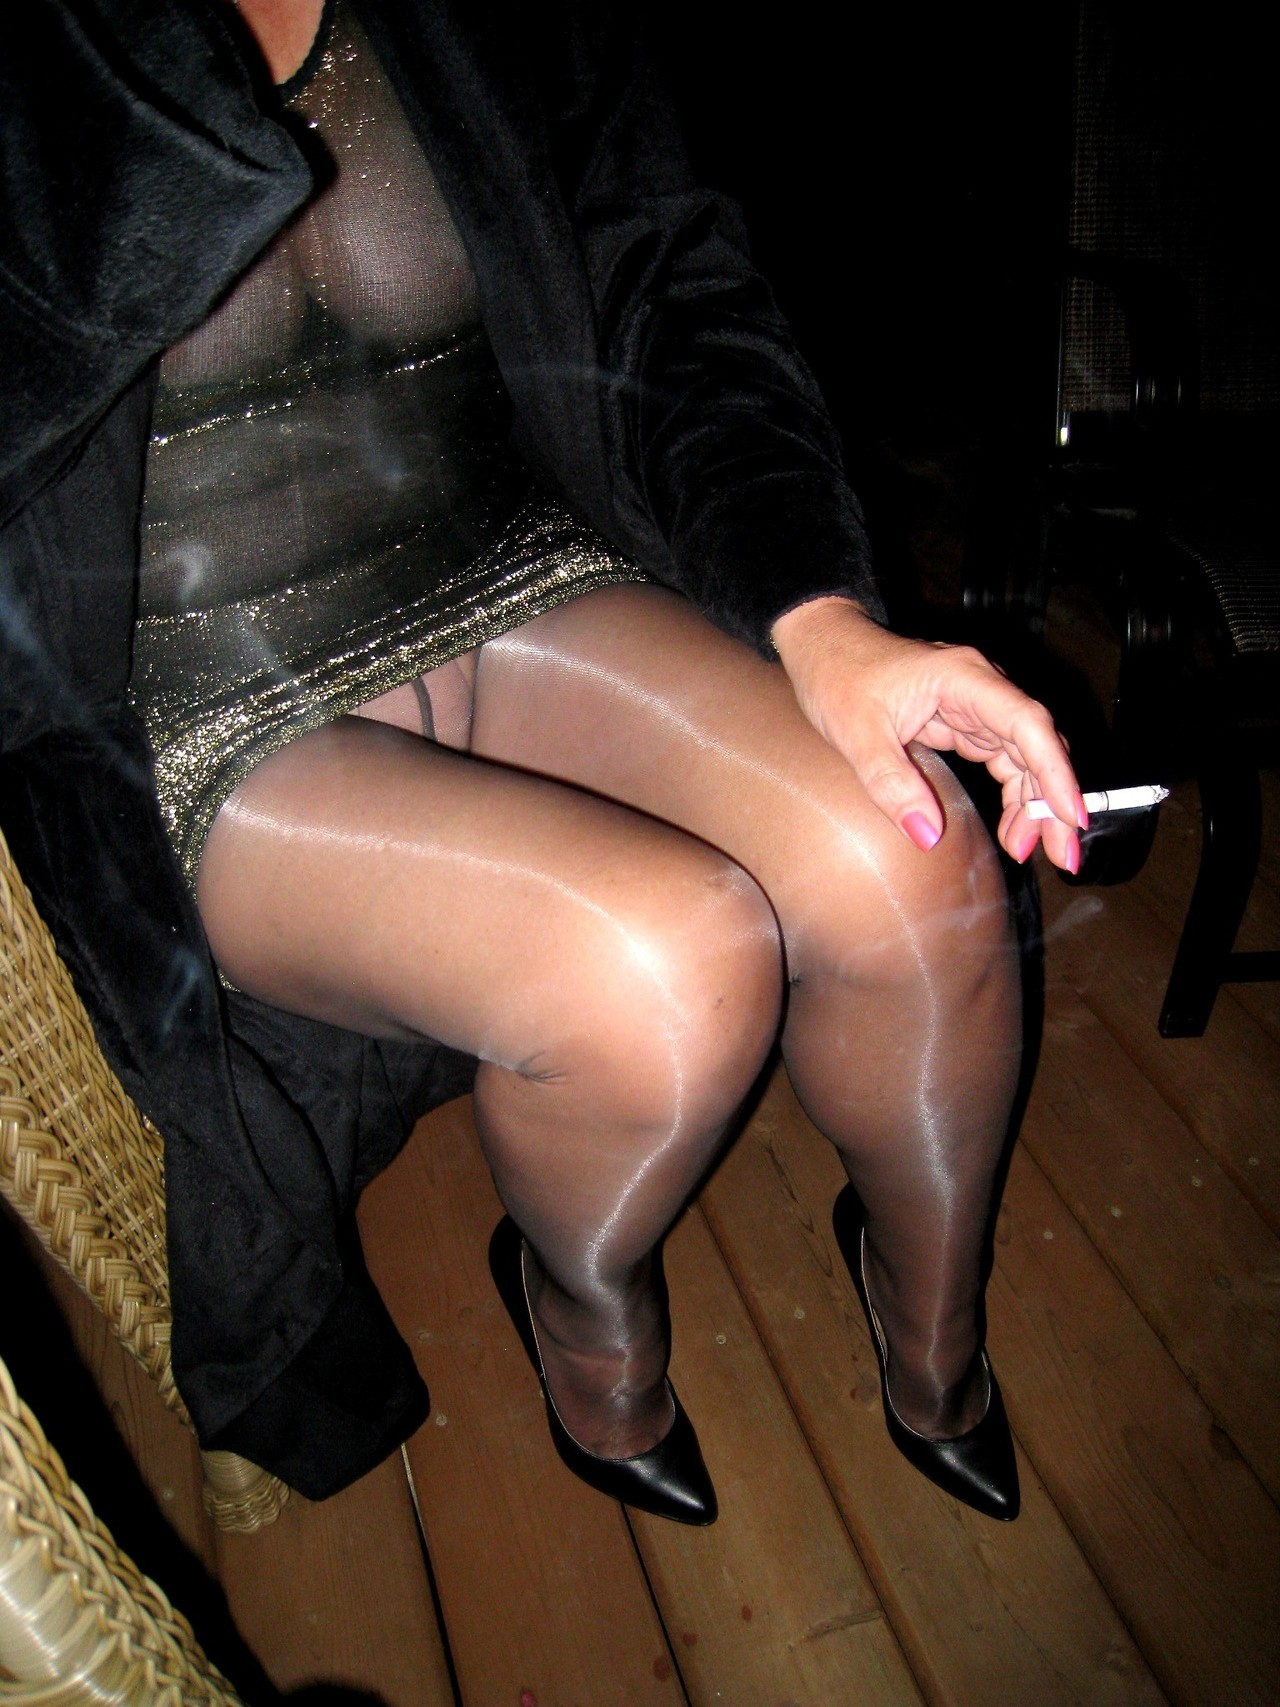 nylon stockings losing heels sex video